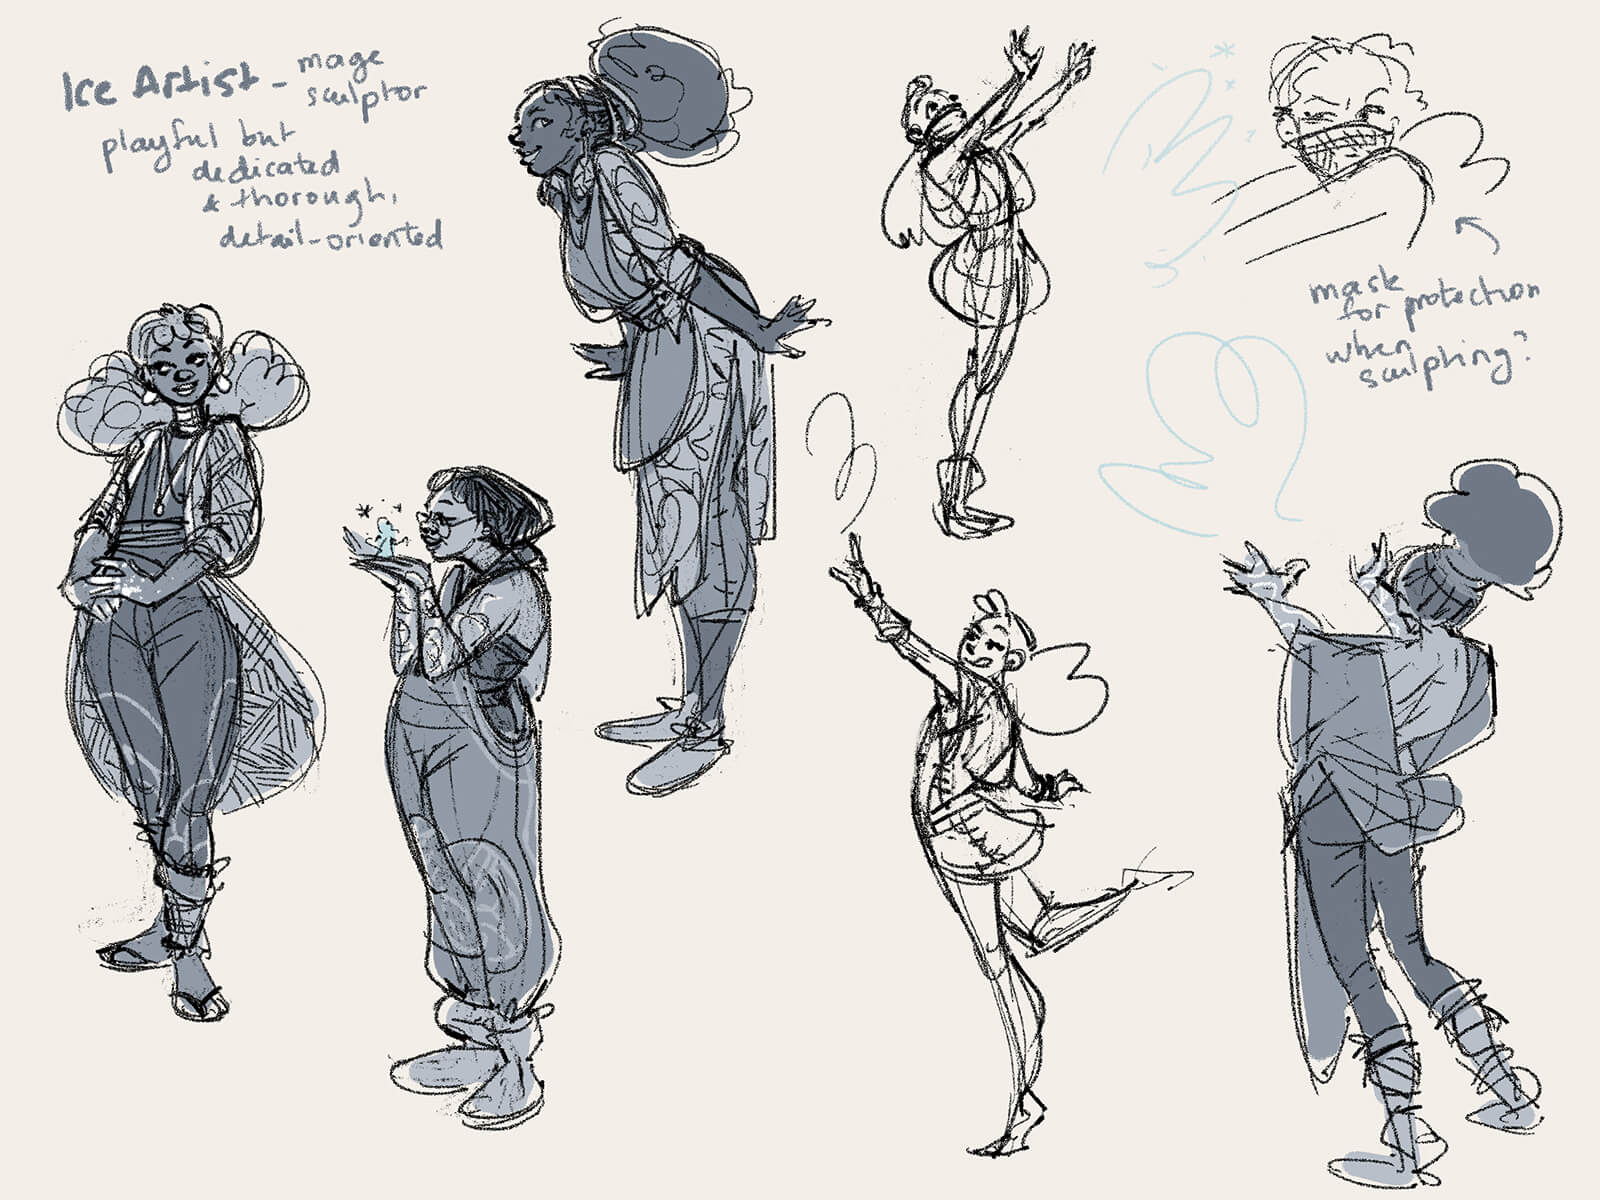 Multiple views of a woman dancing, creating, and standing